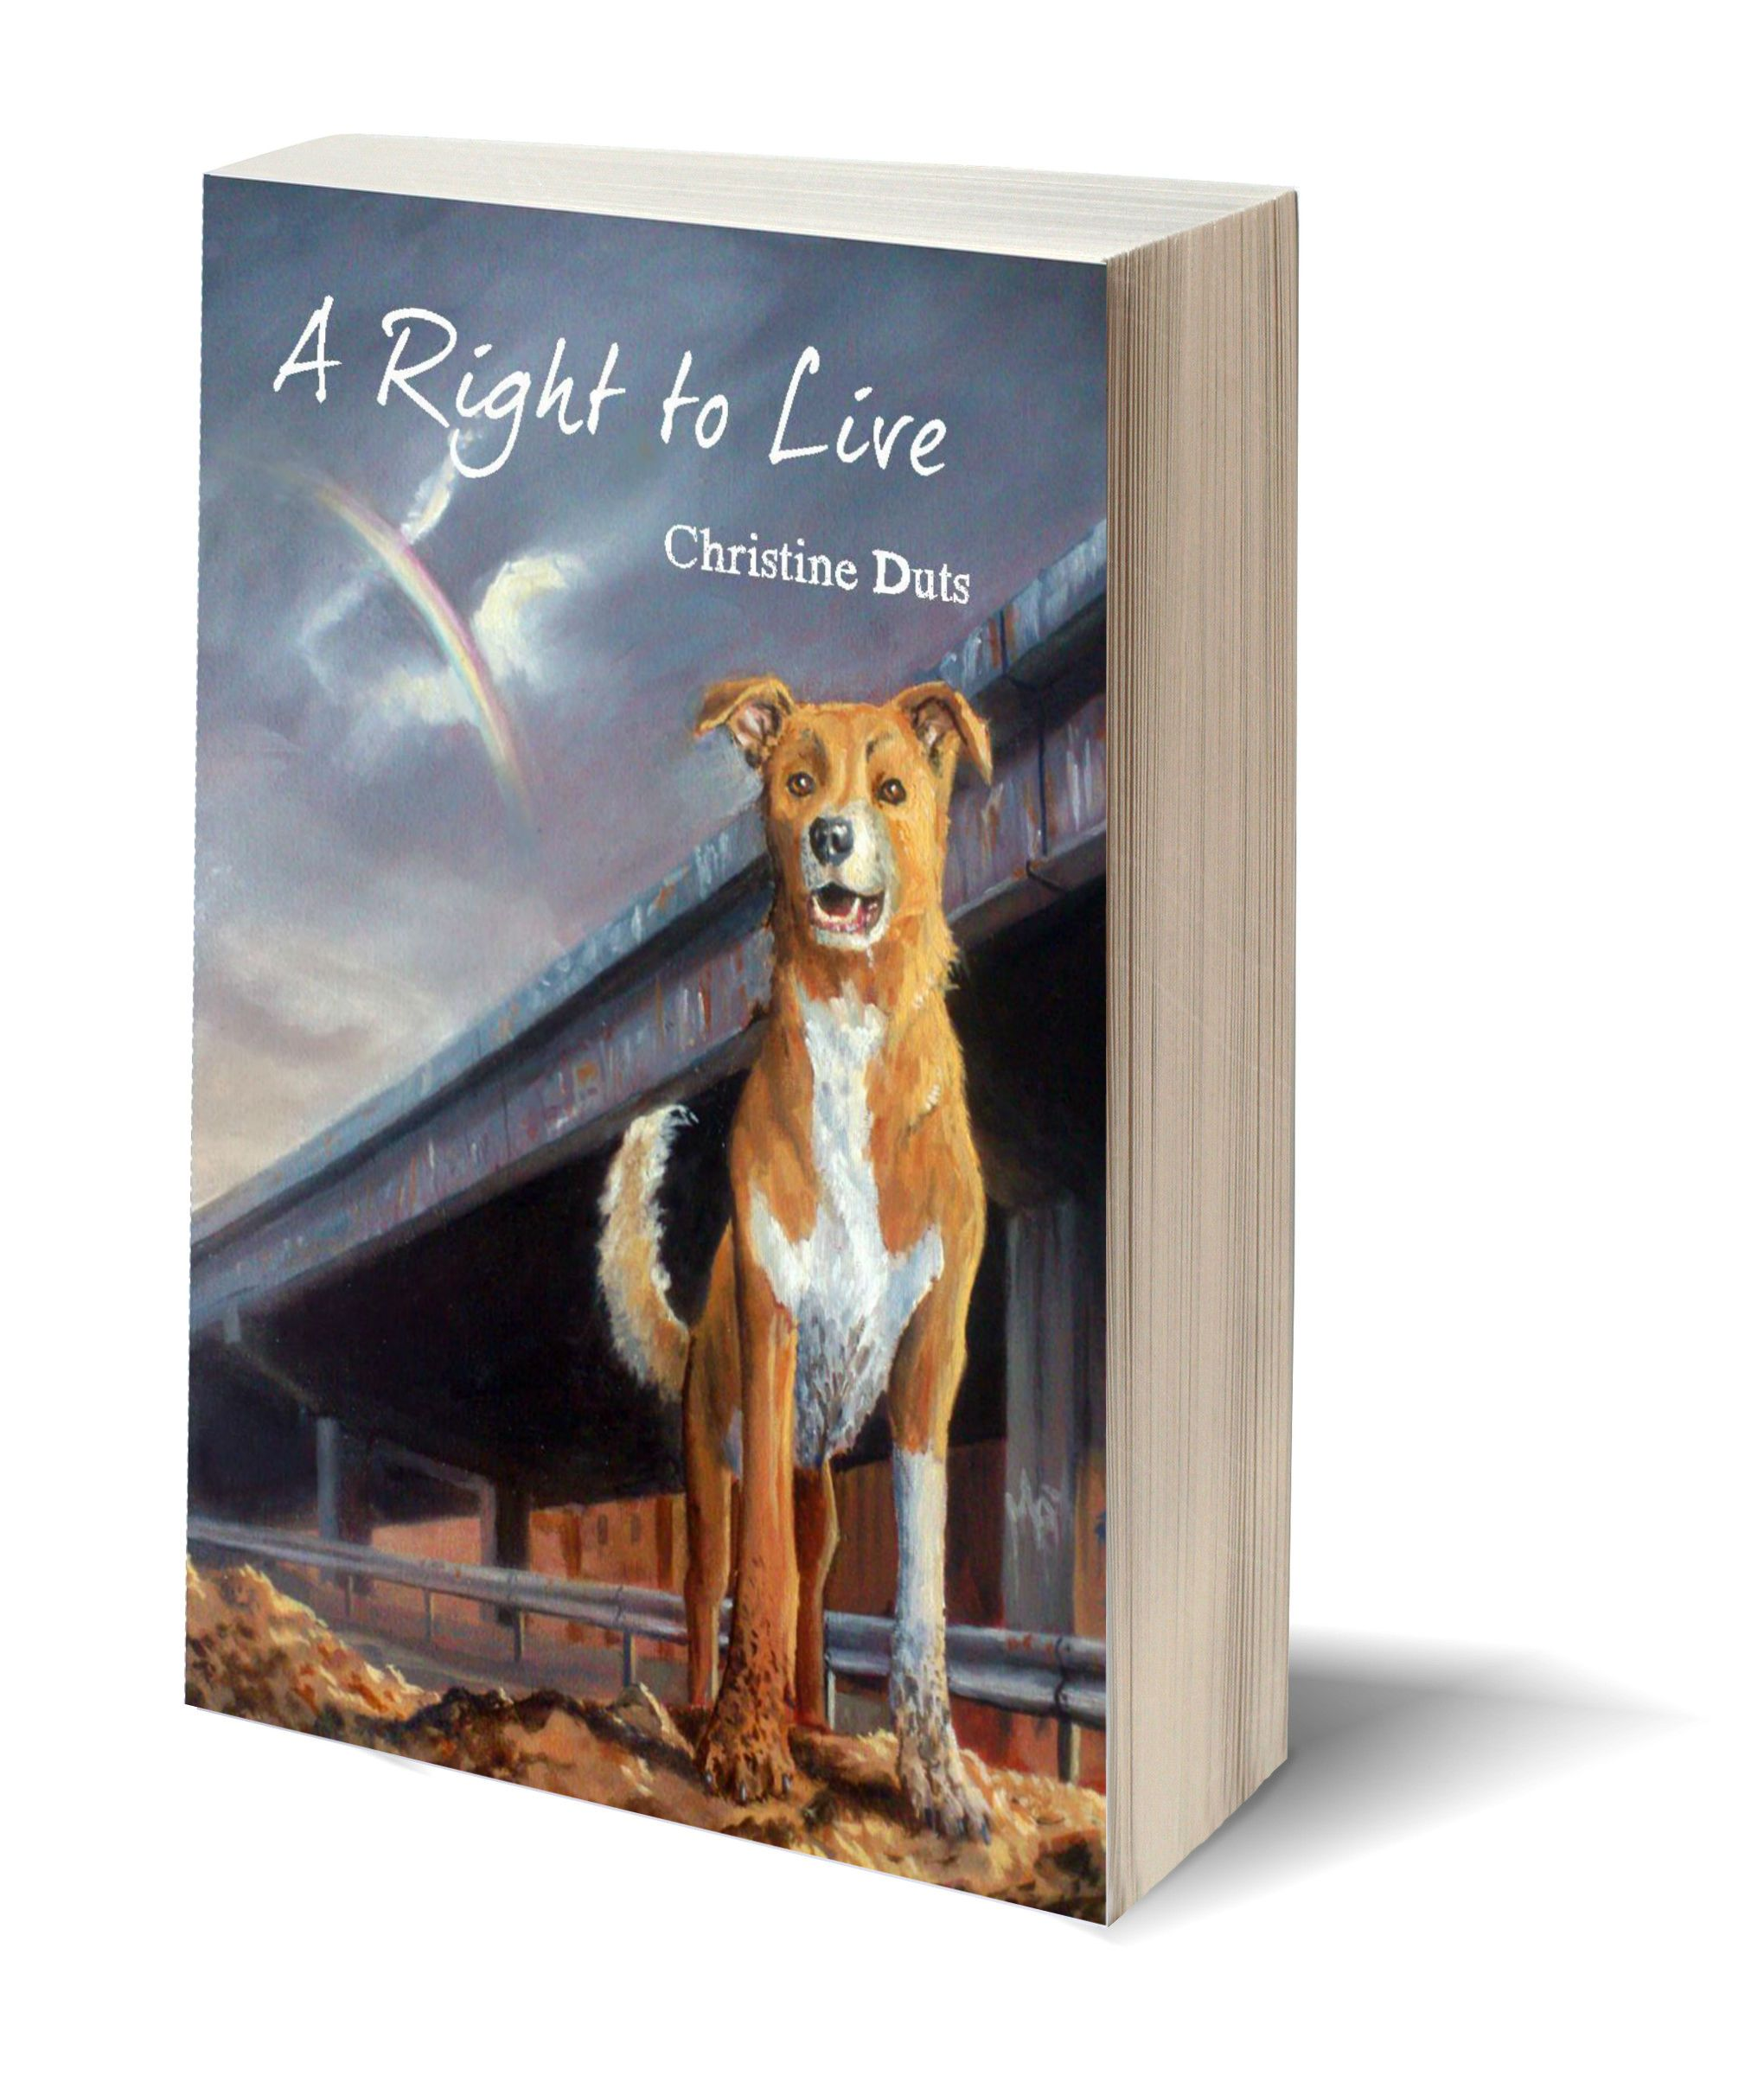 FICTION. A Right to Live - Christine Duts. Rusty is the only female in a litter of five puppies. Unwanted, Rusty finds herself and her fatally-ill brother dumped at a garbage site. Fearing she'll have to face the dangers and terrors of a world without an owner, can Rusty overcome her tough start and find a place where she belongs? #animalrights #rspca #ethics #morals